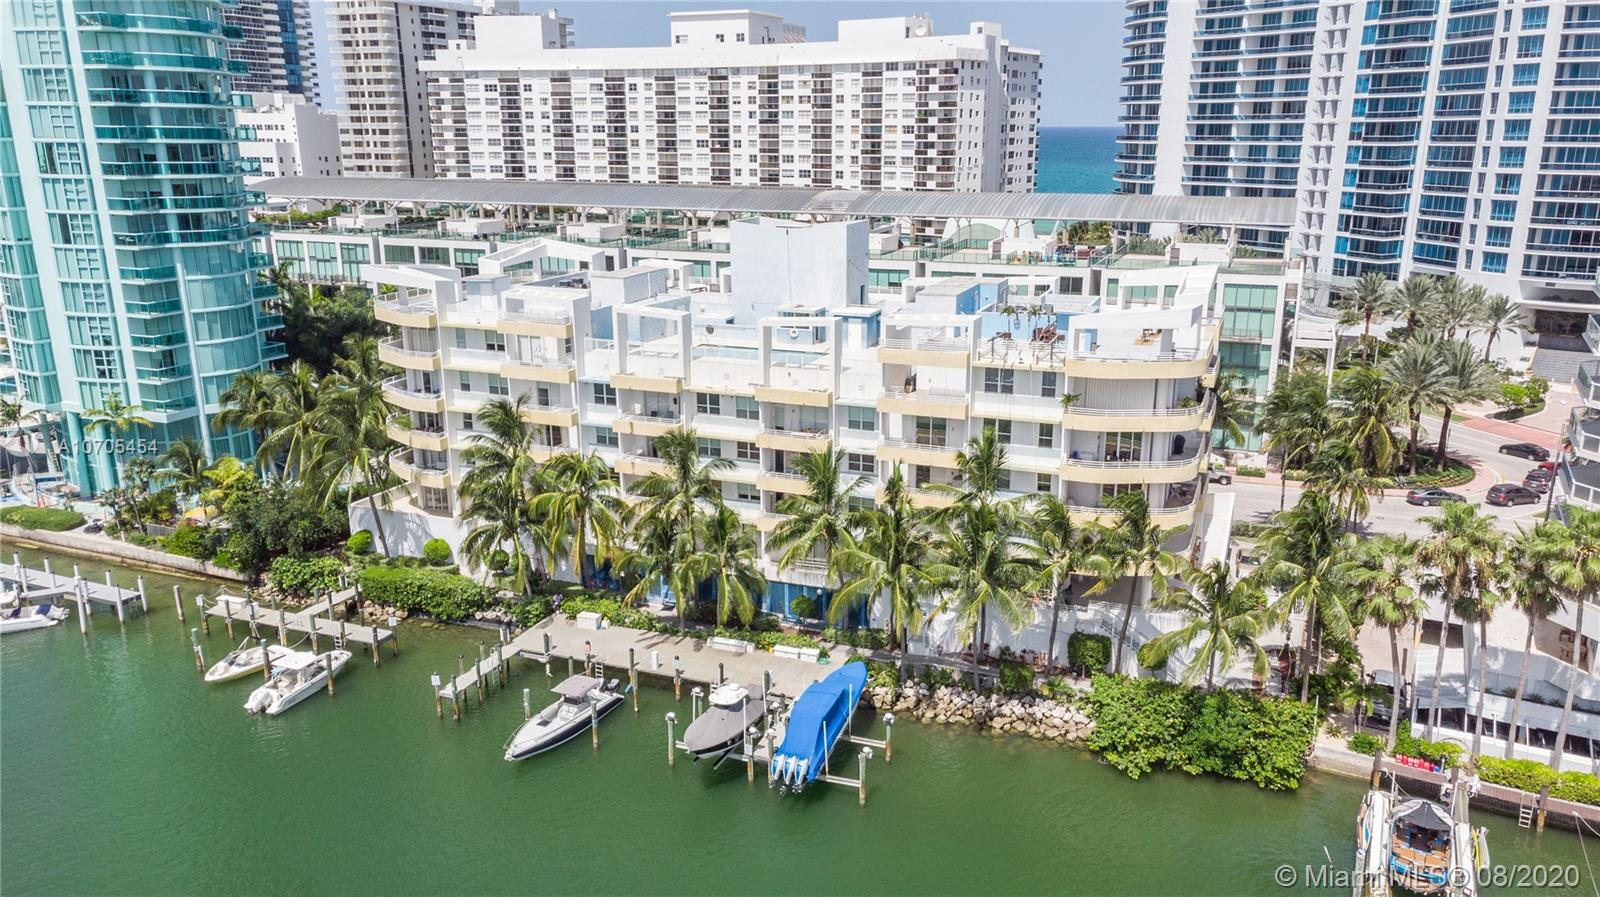 Exclusive Corner Lanai unit with wraparound terrace of almost 1000 sq ft, high ceilings, bright and spacious unit w hardwood floors. Feels as if you are directly on the water form this level, enjoy your spacious outdoor terrace with lots of room for outdoor furniture. Amazing water views from every room located in the desired Miami Beach district and a walk across the street to your publicbeaches. Boutique building with just 33 units. Fully amenities building w rooftop pool and gymnasium, sauna, steam room and 24 hr security w front desk atendee. Boat slips to the community available for docking your boat.